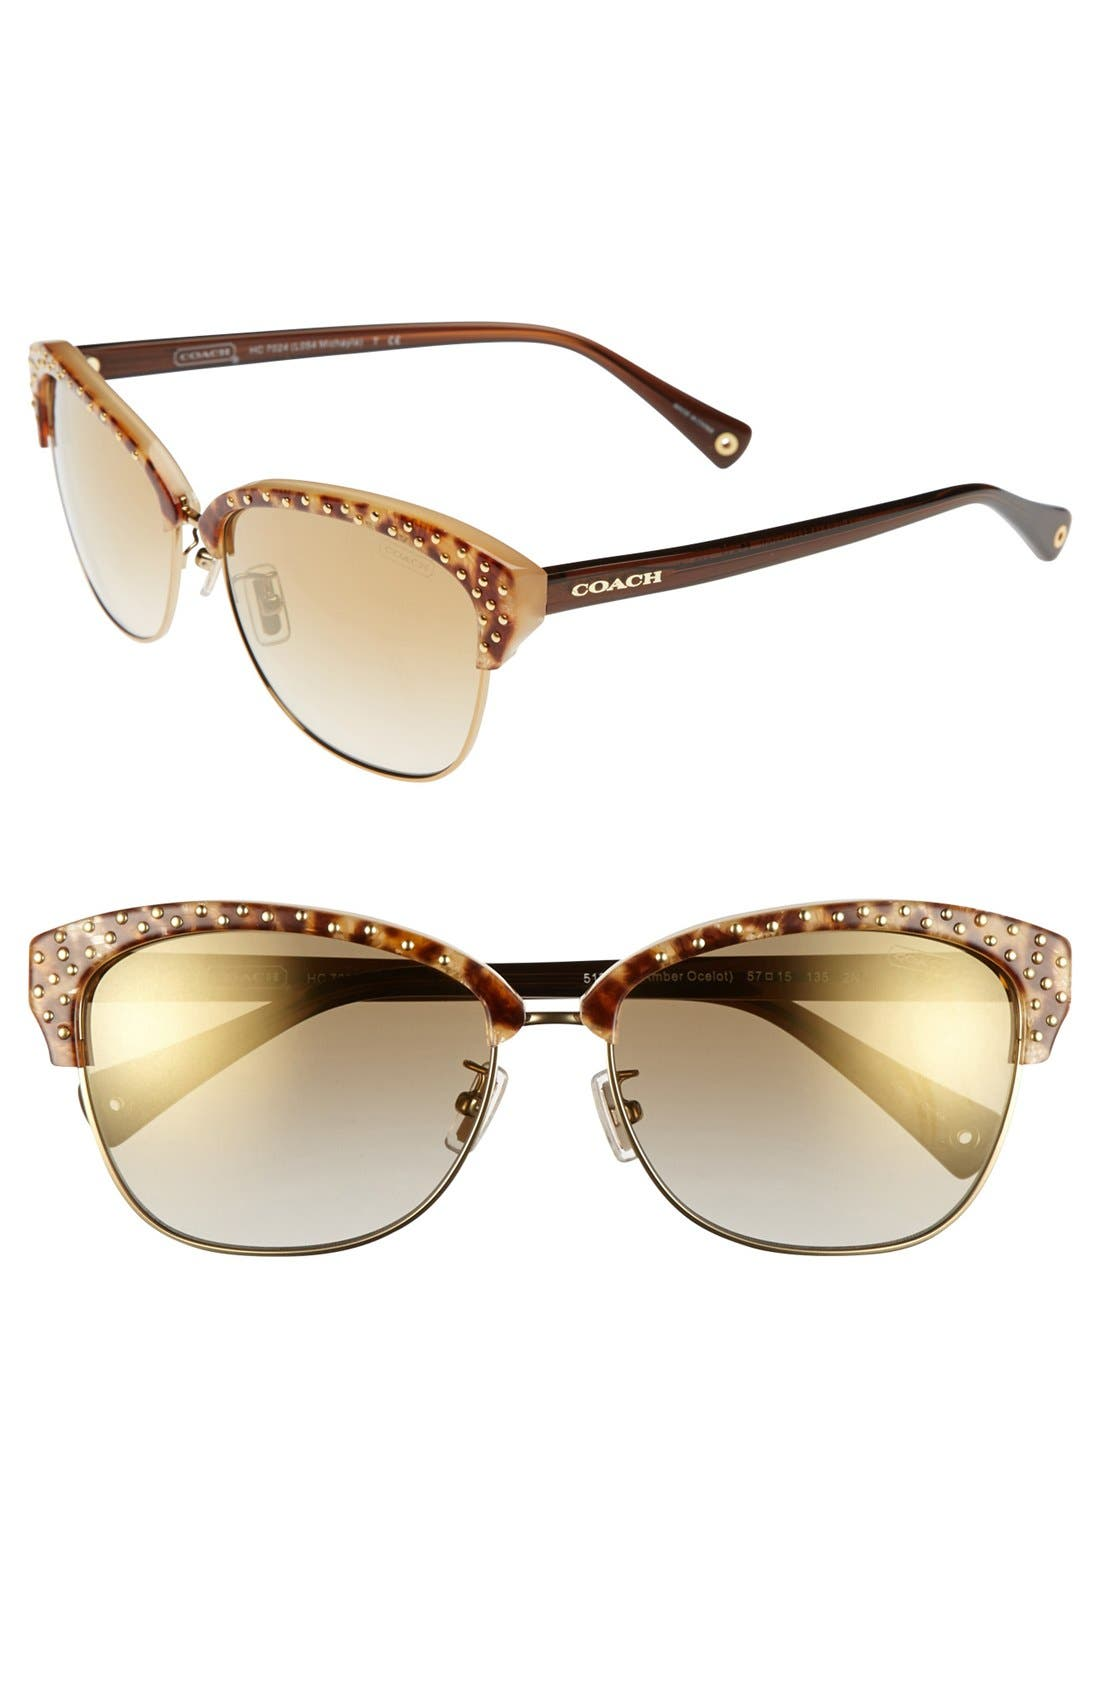 Alternate Image 1 Selected - COACH 'Clubmaster' 57mm Cat Eye Sunglasses